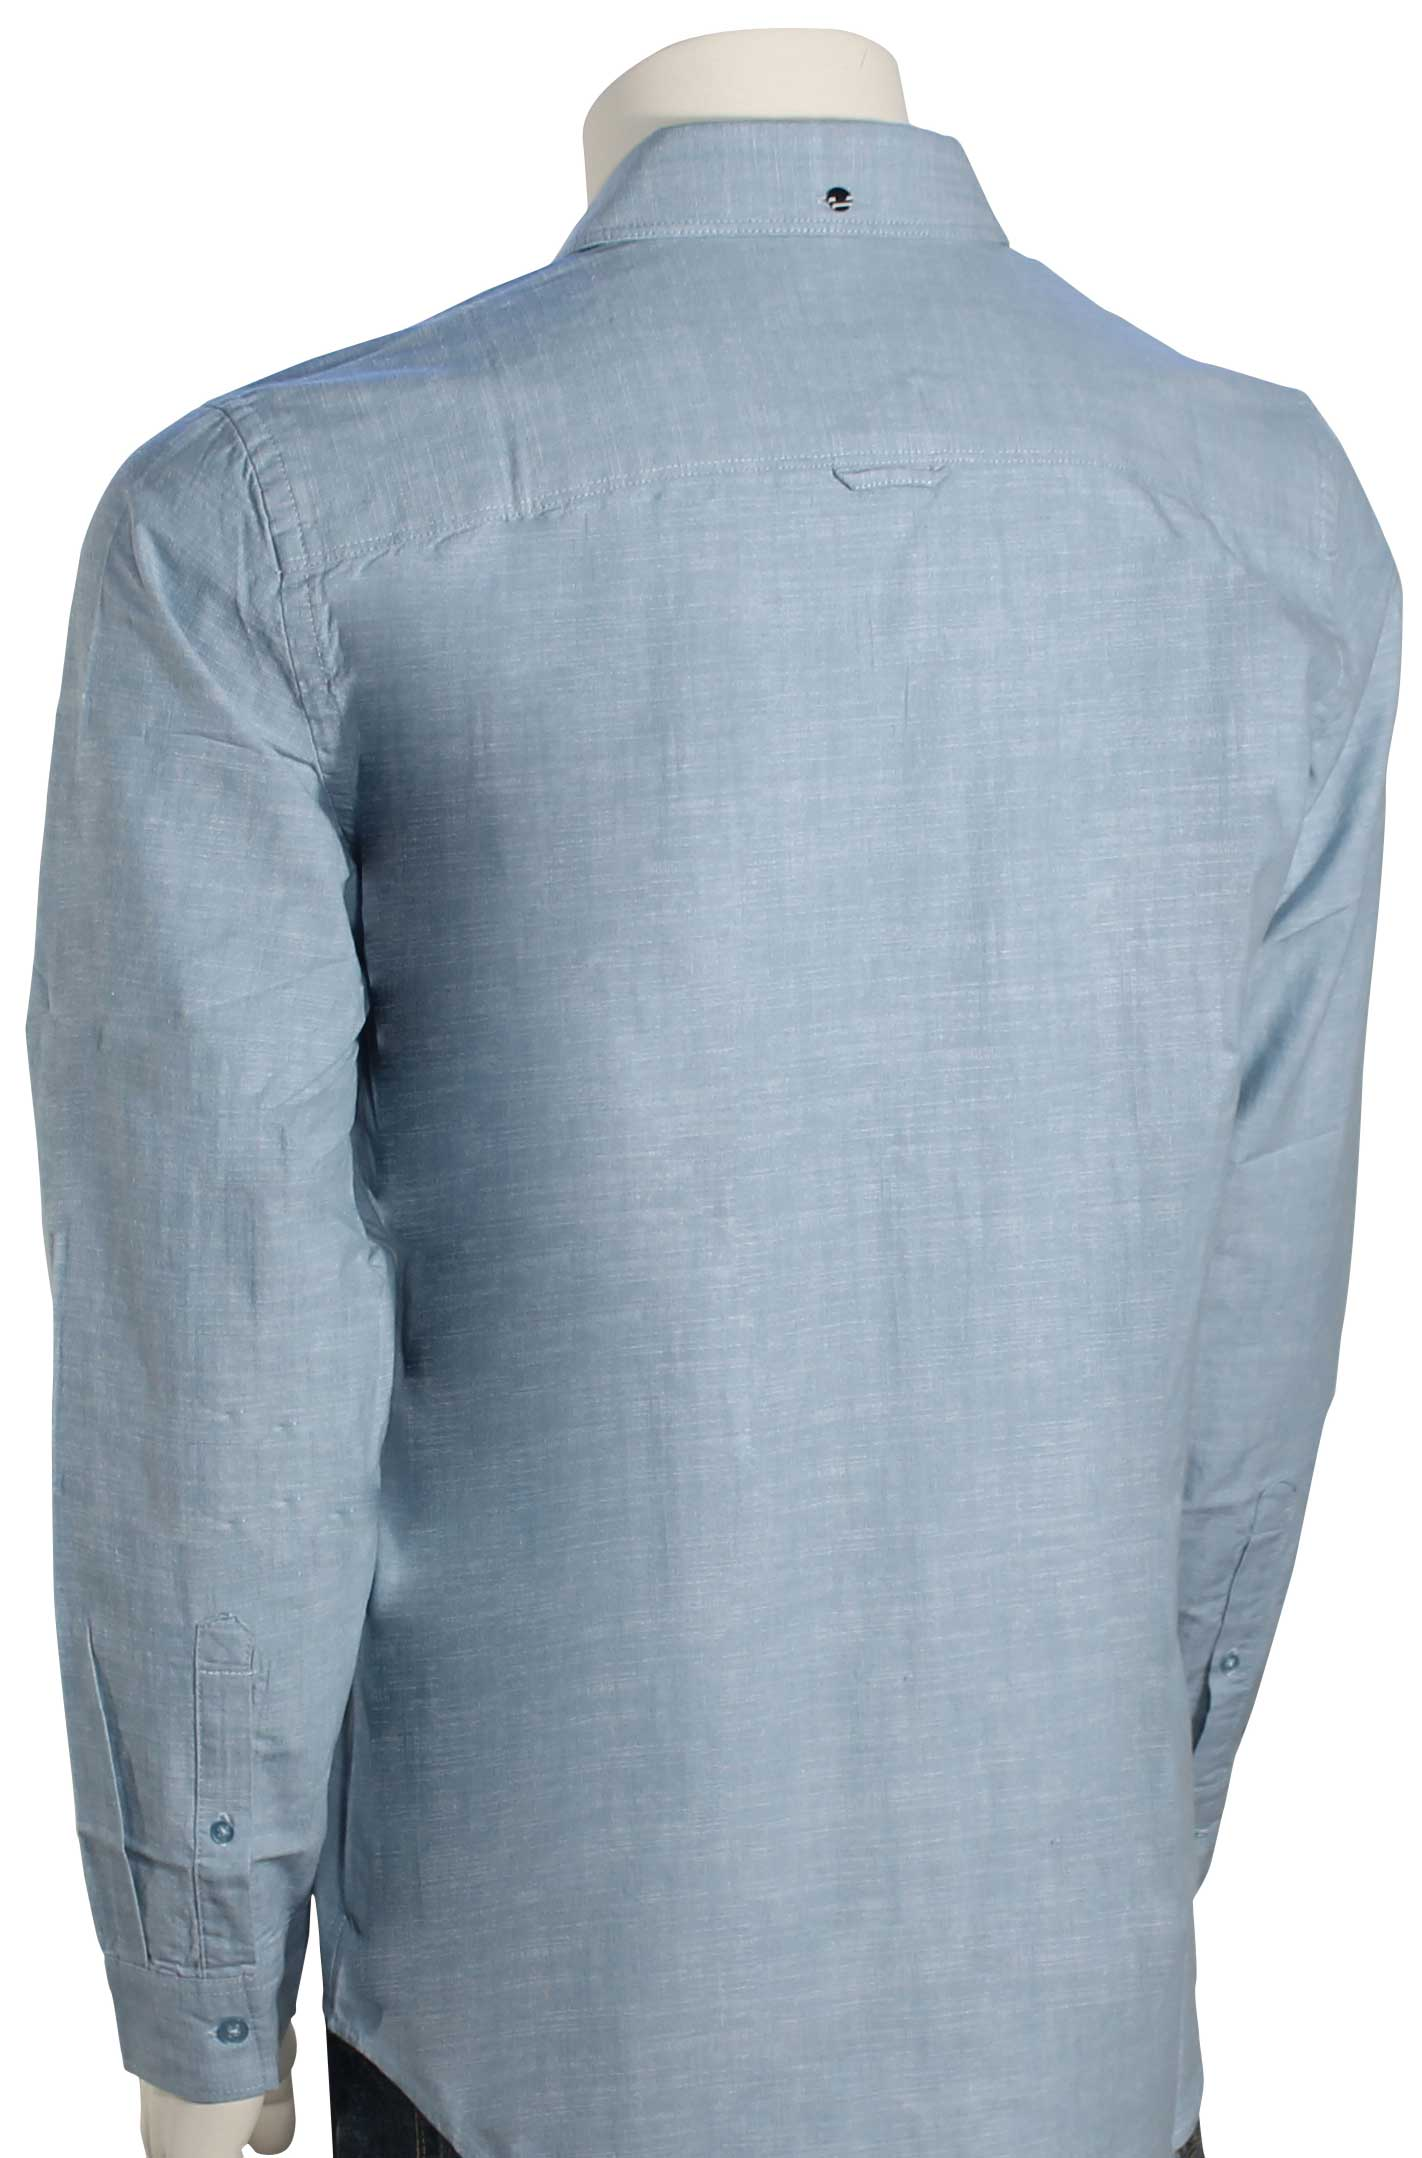 Hurley One And Only 30 Ls Button Down Shirt Cerulean New Ebay